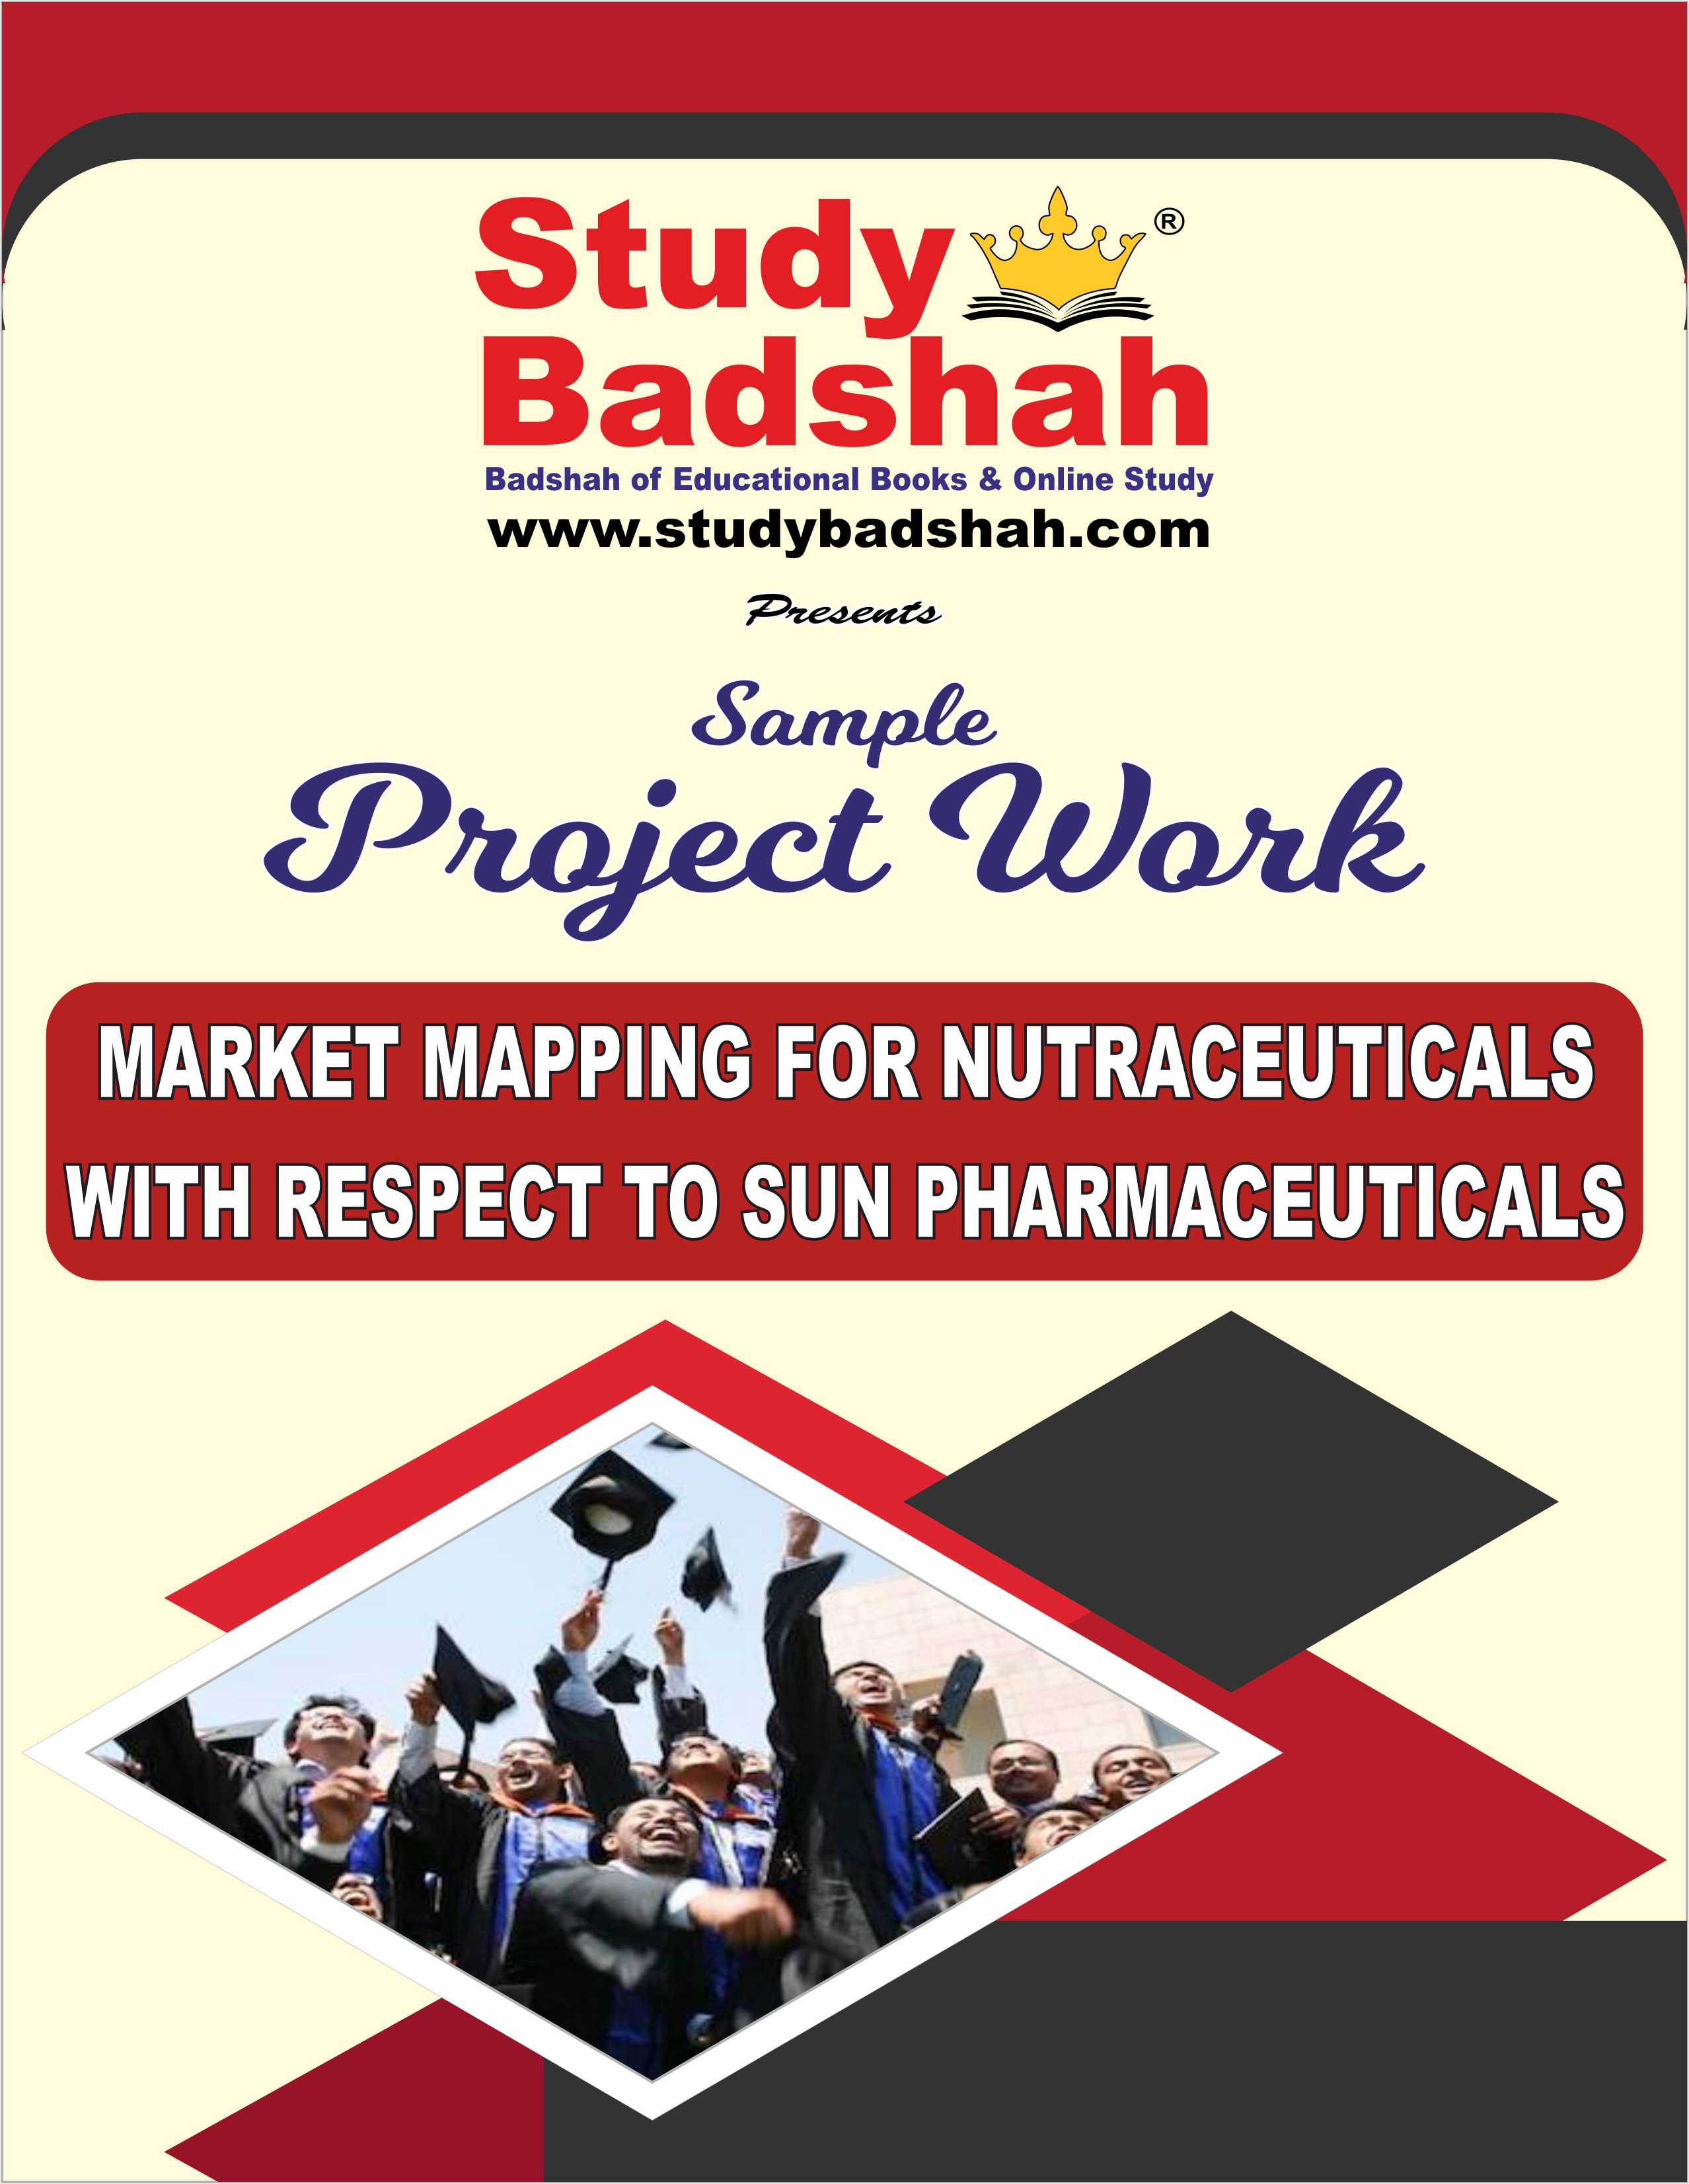 MARKET MAPPING FOR NUTRACEUTICALS WITH RESPECT TO SUN PHARMACEUTICALS